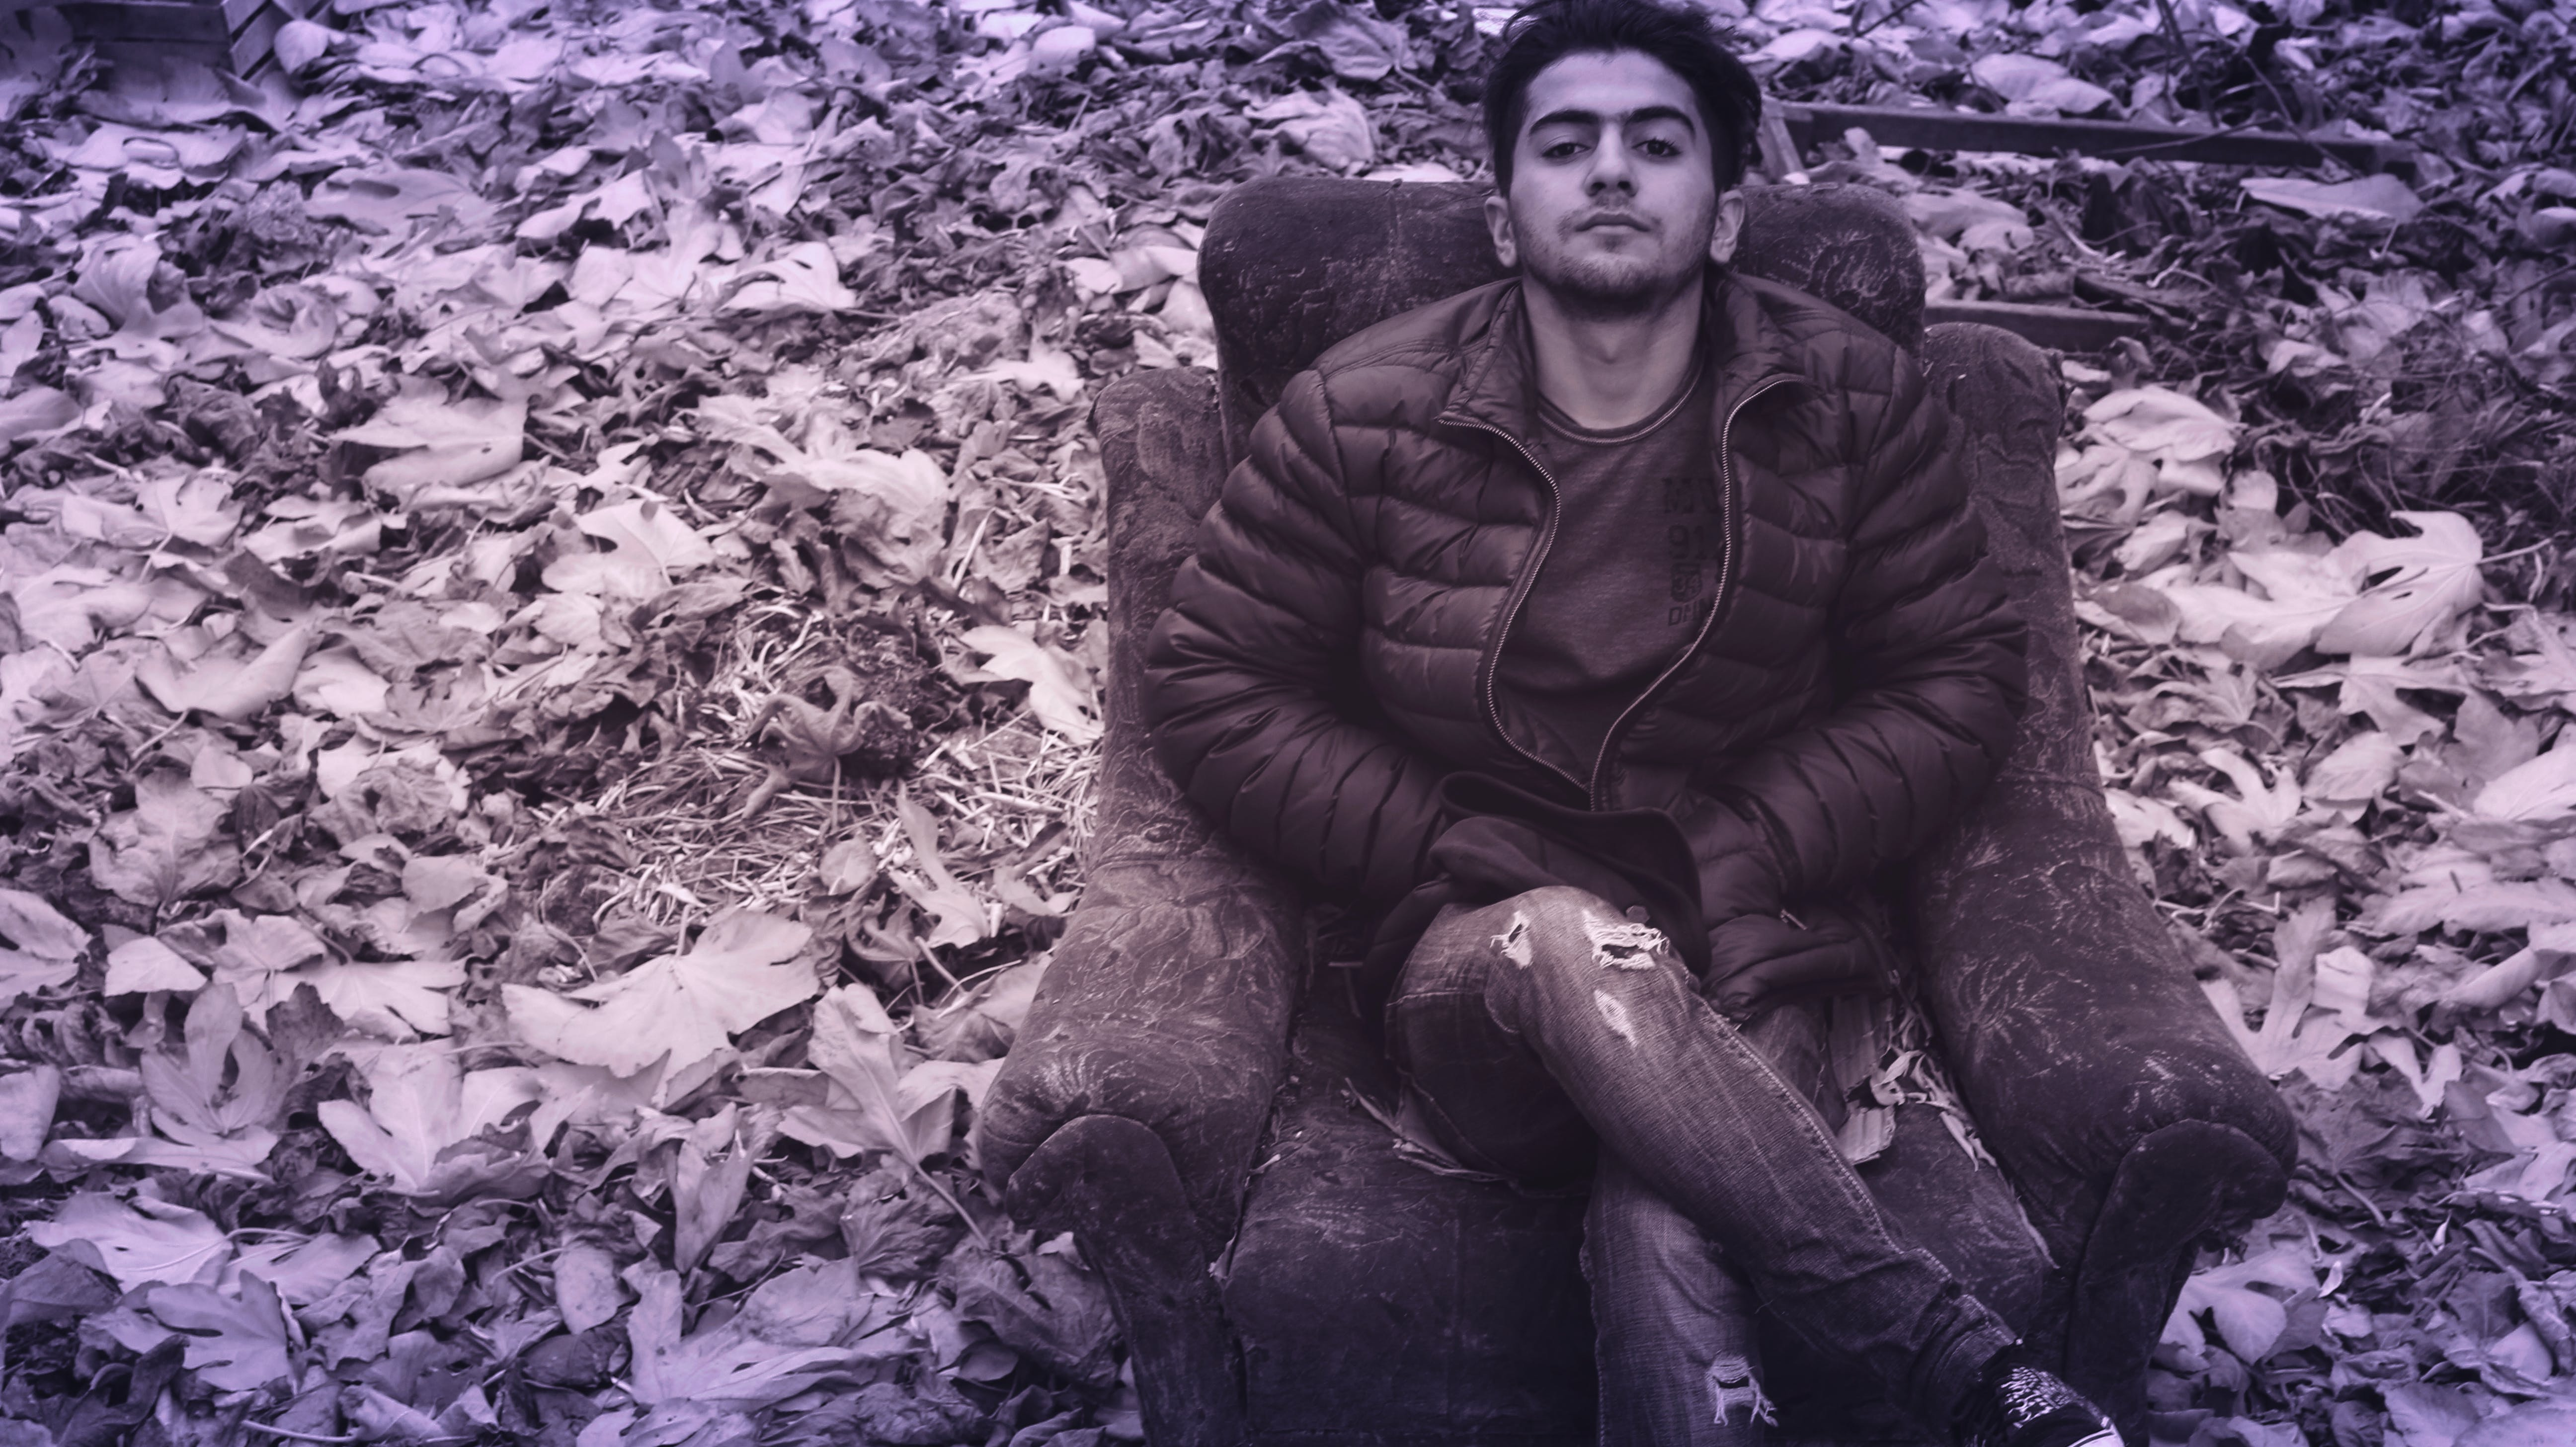 Man in Black Puffer Jacket and Distress Jeans Sitting in Couch